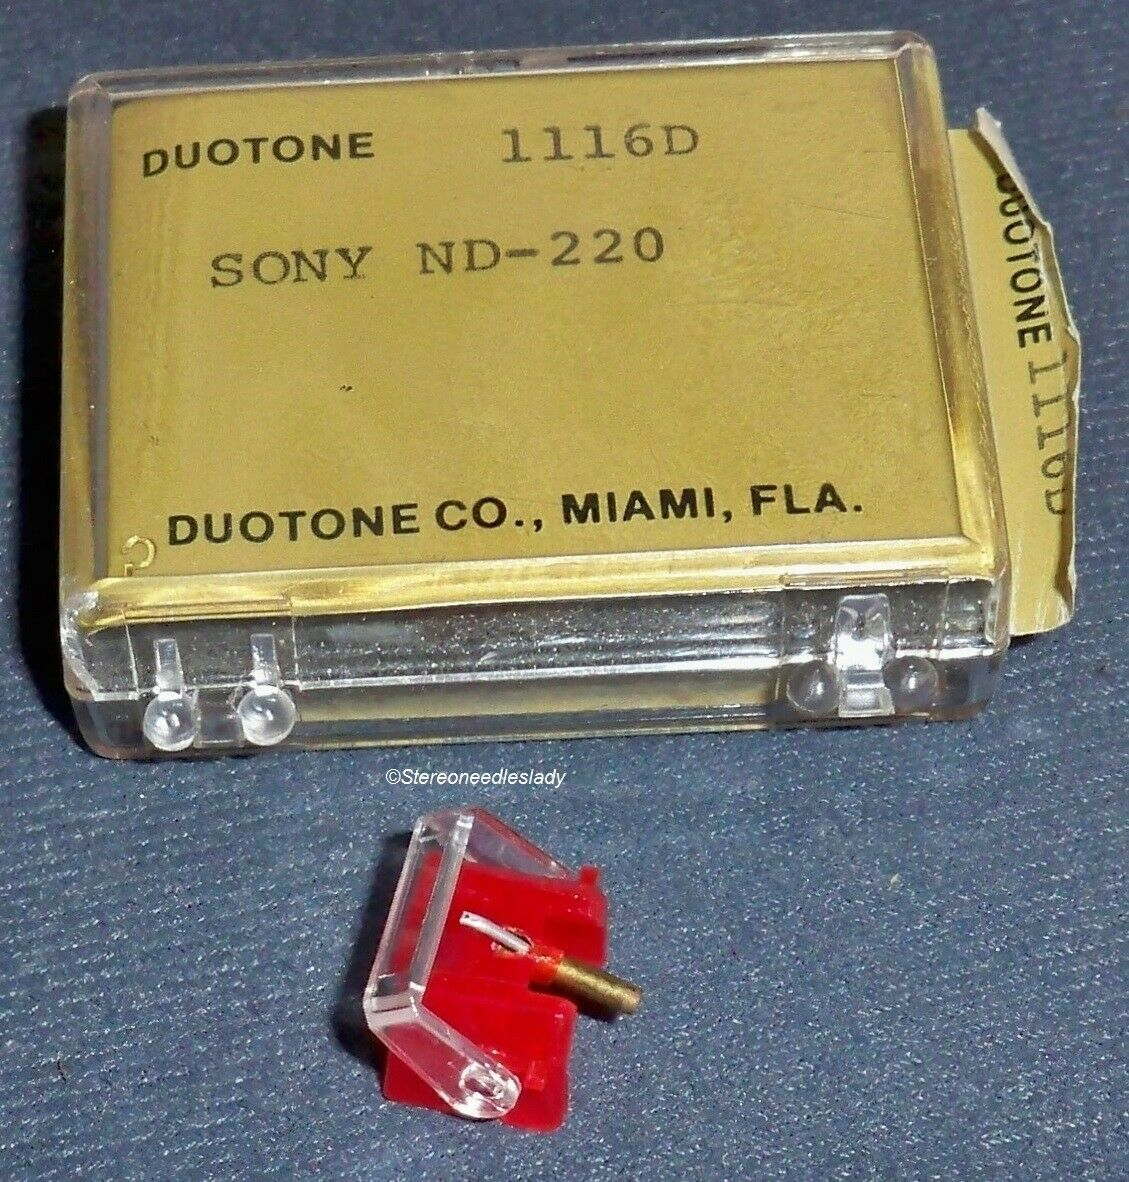 STYLUS NEEDLE FOR SONY ND-220 220G fits SONY VL20 G QUALITY DUOTONE